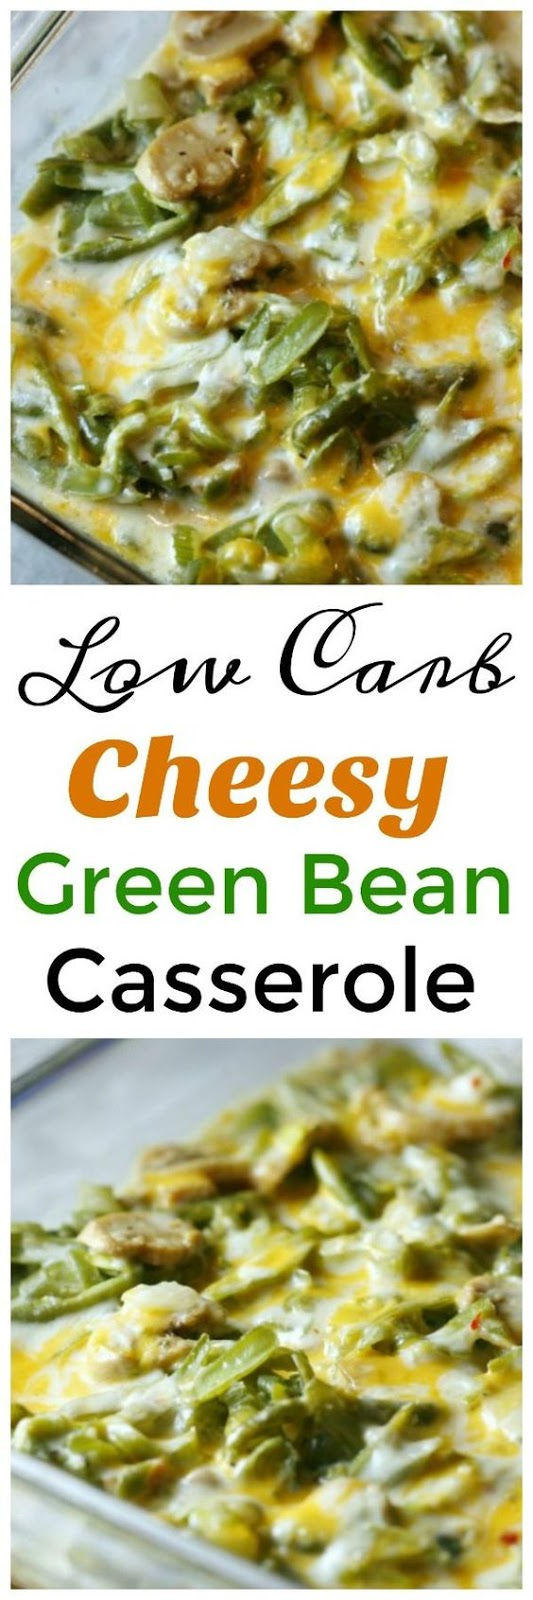 Low Carb Cheesy Green Bean Casserole